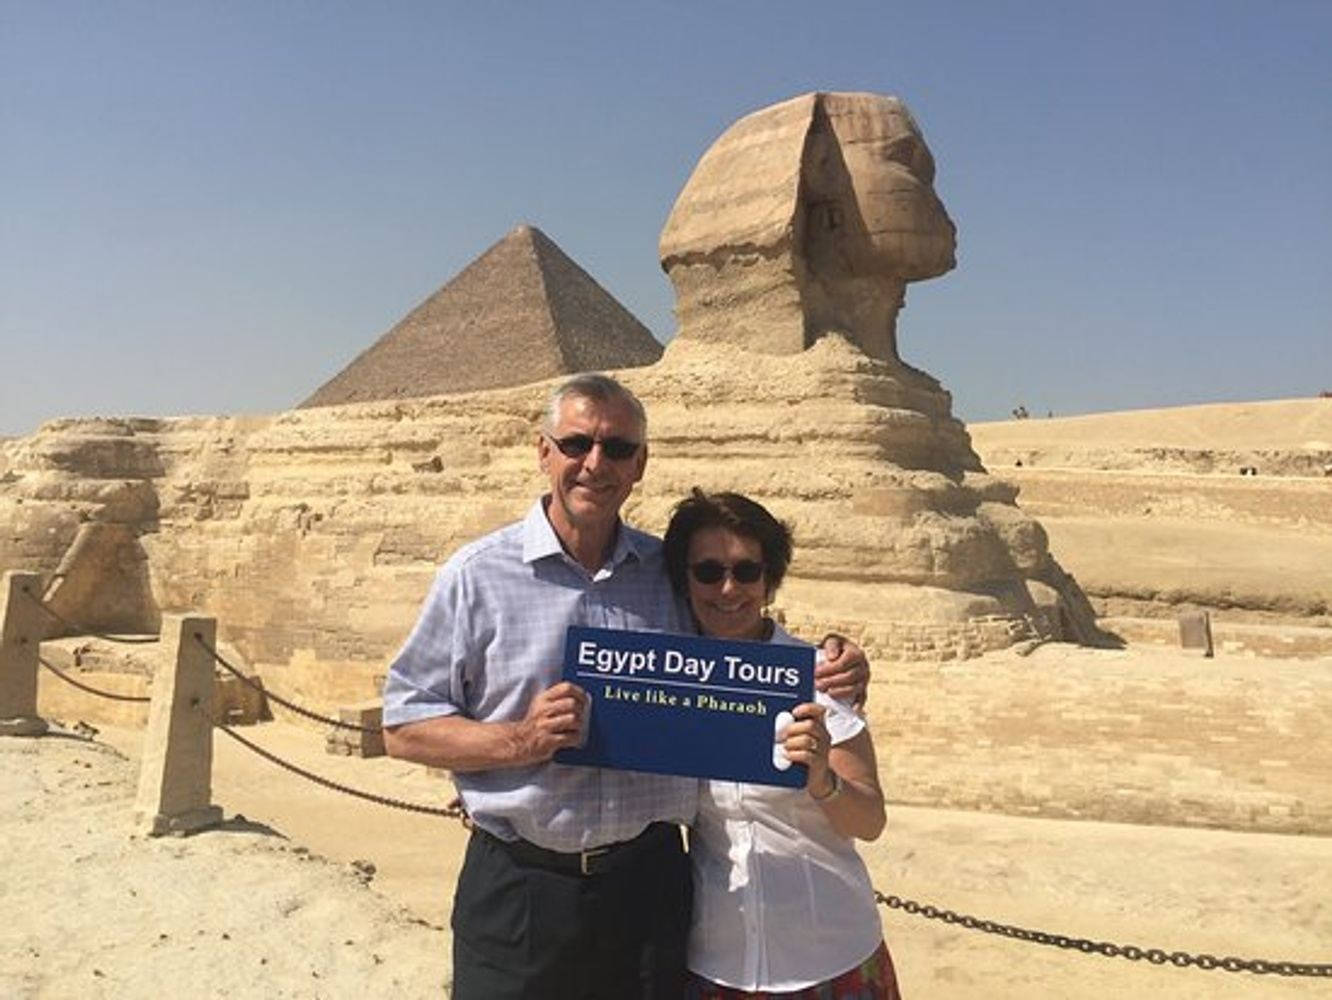 Egypt Day Tours Is the Best For a Beginners Guide